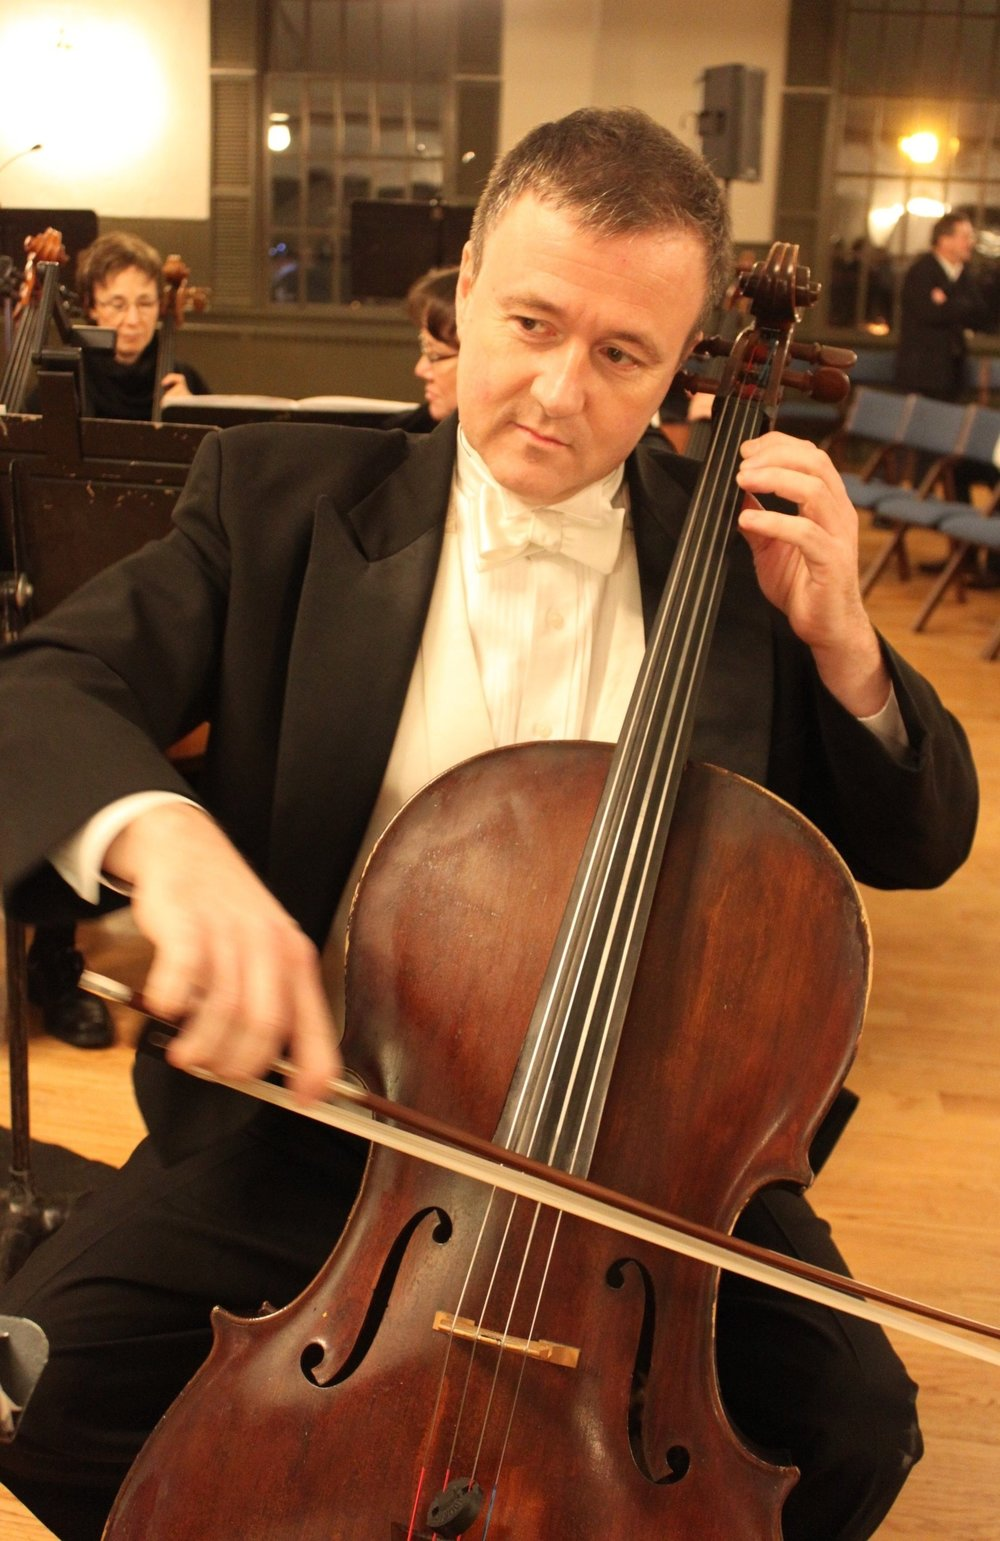 Johann Soults, Cello, has played with the CHSO since its beginning. Come here him in the more intimate setting of a chamber music concert on Saturday, January 27th at Apple Tree Arts, Grafton, MA